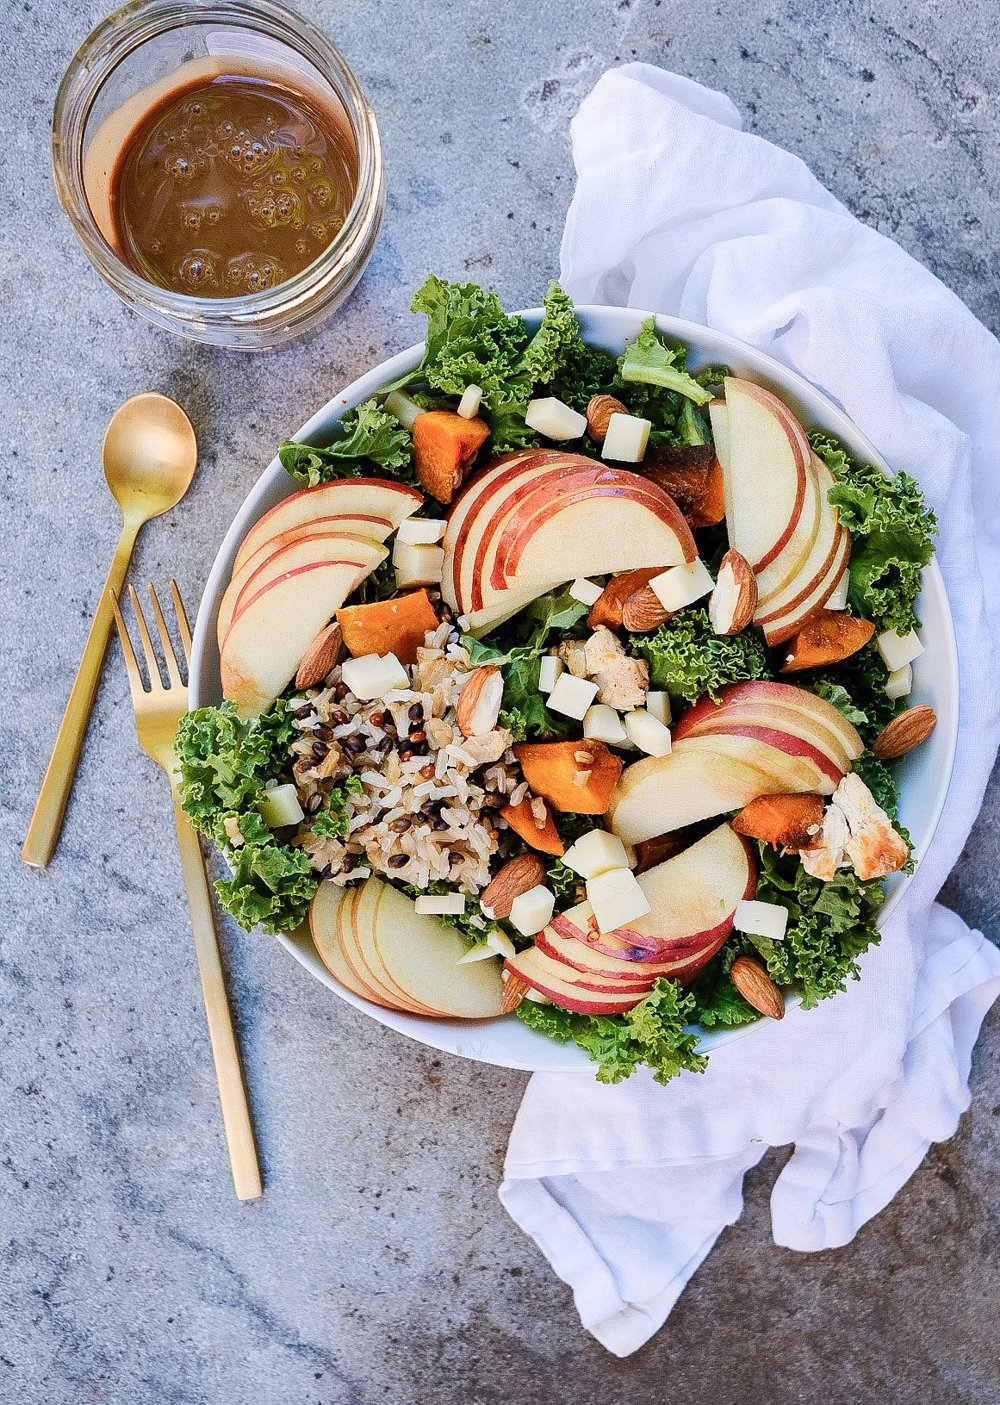 Lifestyle Blogger Chocolate and Lace shares her recipe for Copycat Sweetgreen Harvest Bowl.